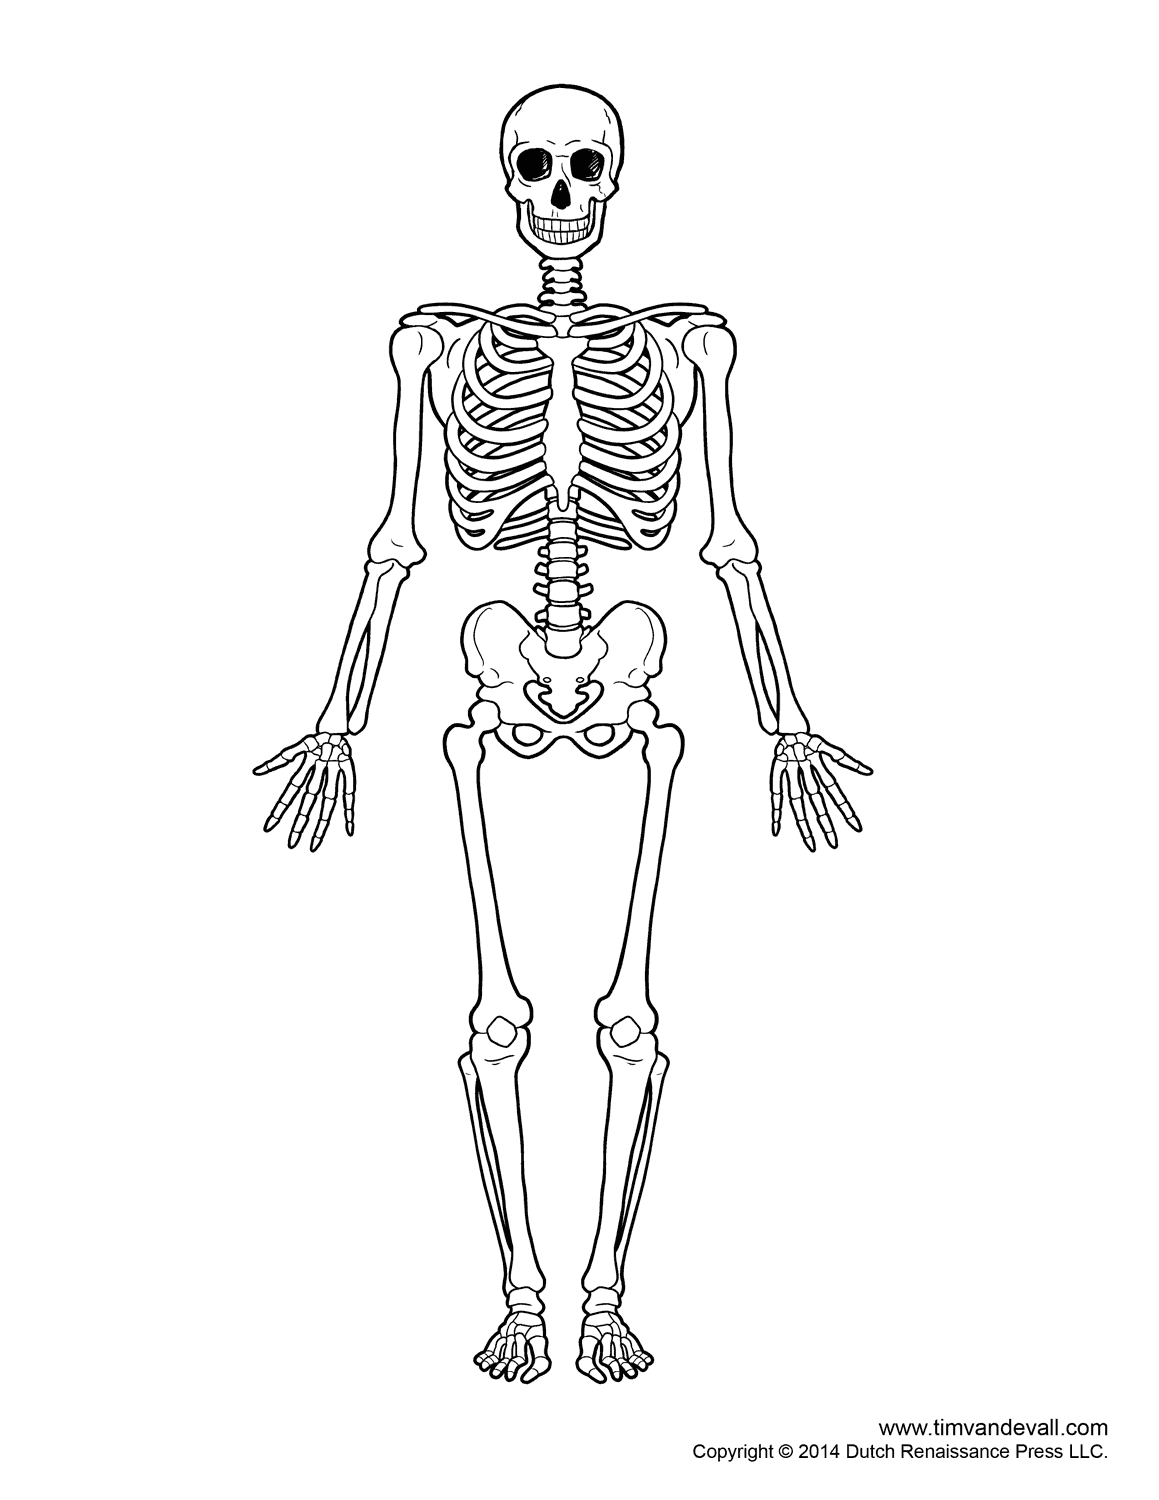 Skeleton Outline With Skeleton Images Collection 41 Chandrakant